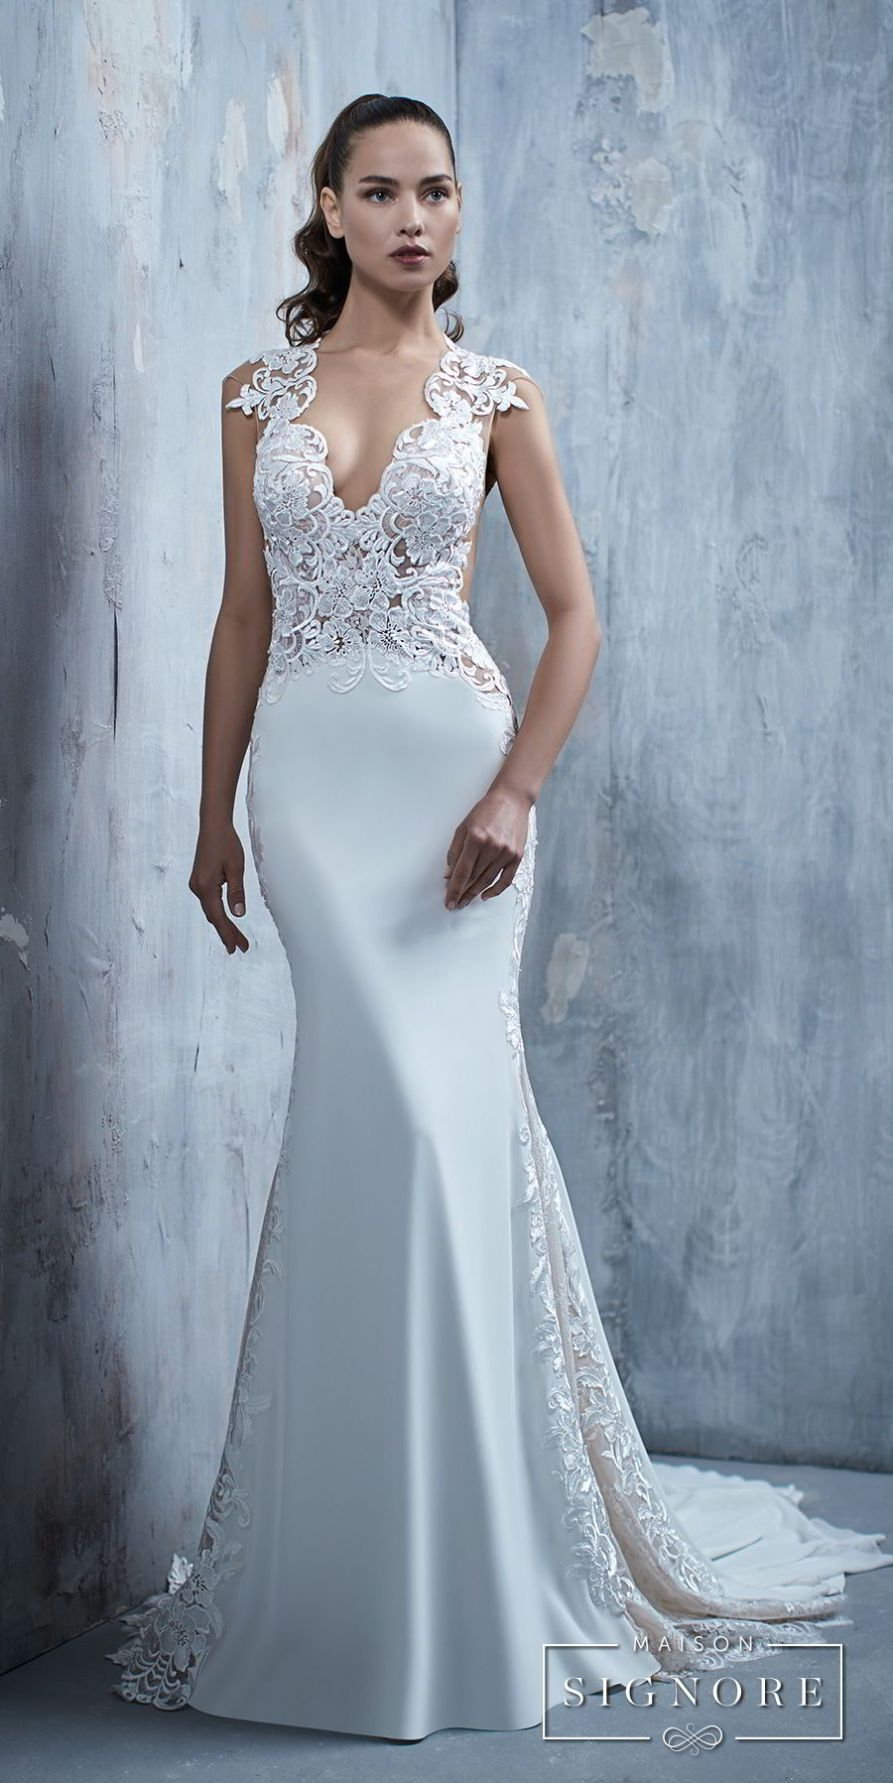 Maison signoreus stunning wedding dresses in touch with